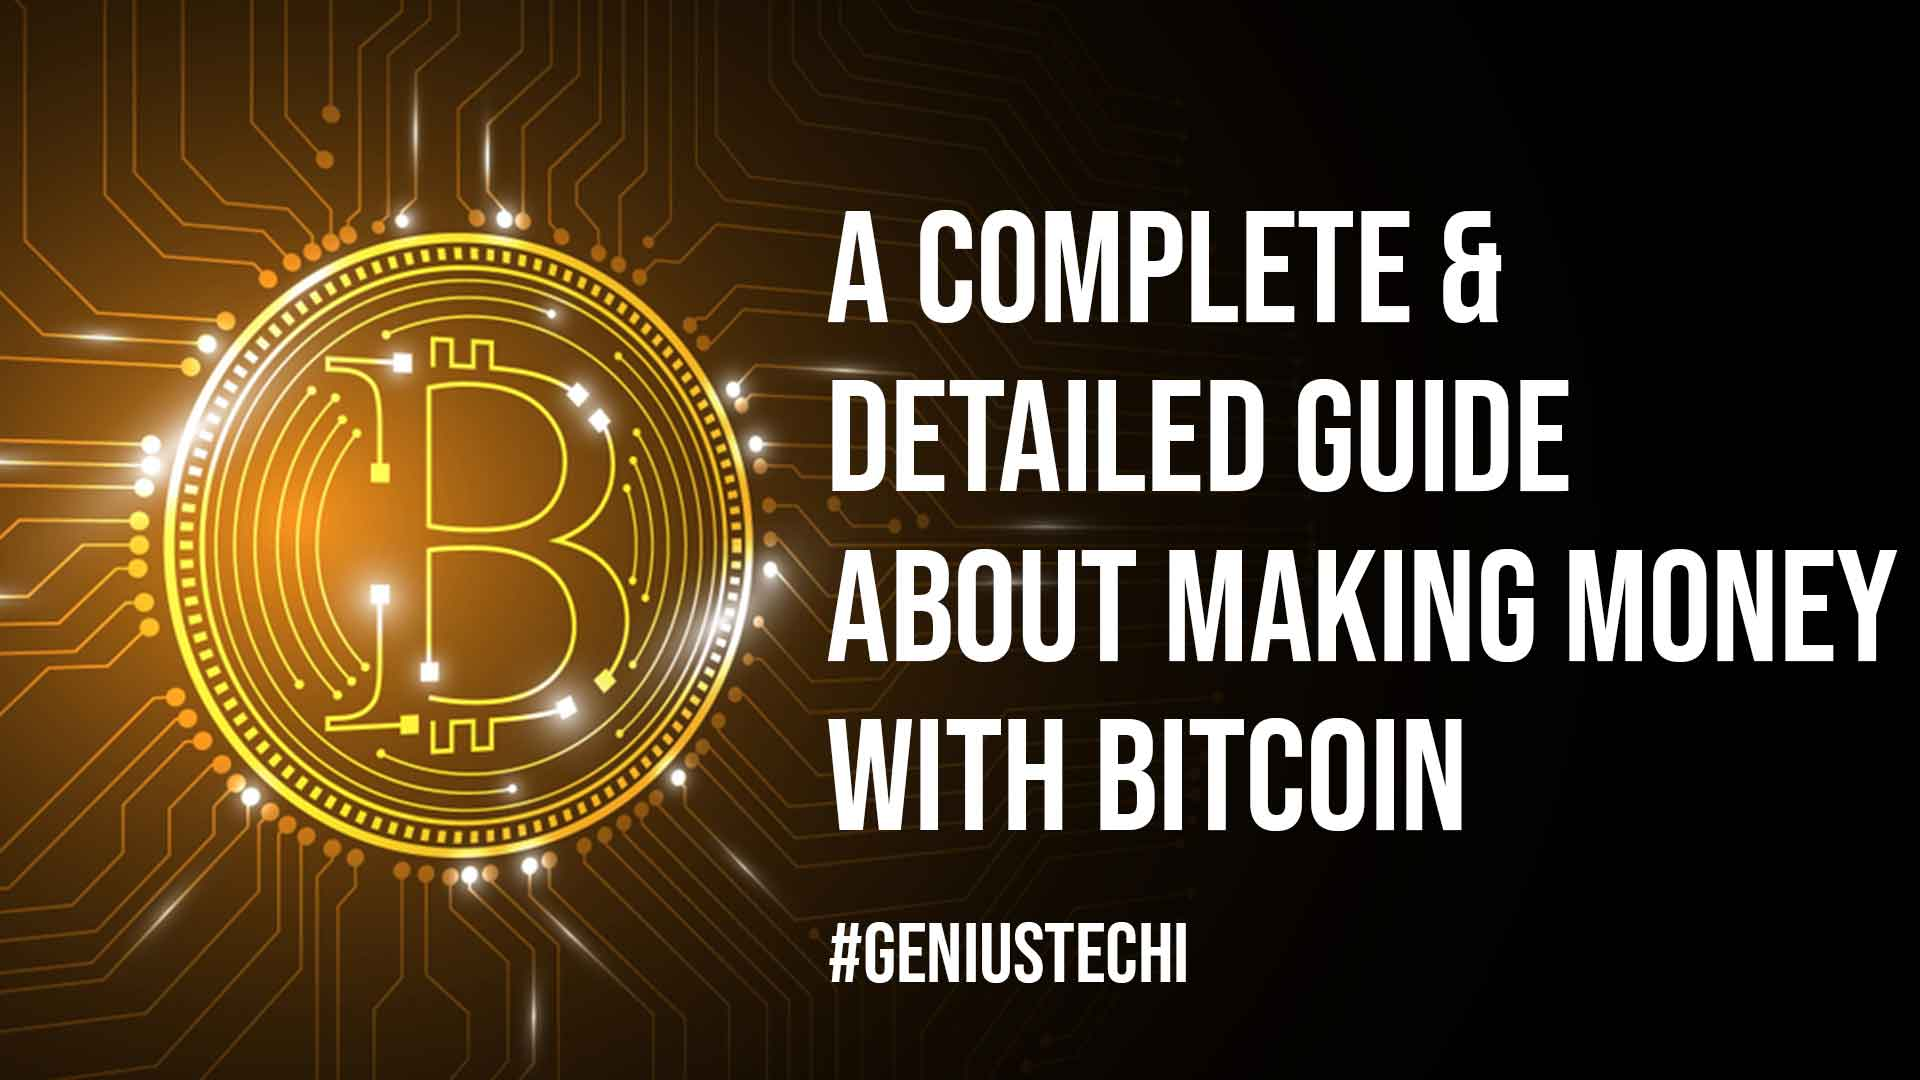 A Complete and Detailed Guide about Making Money with Bitcoin